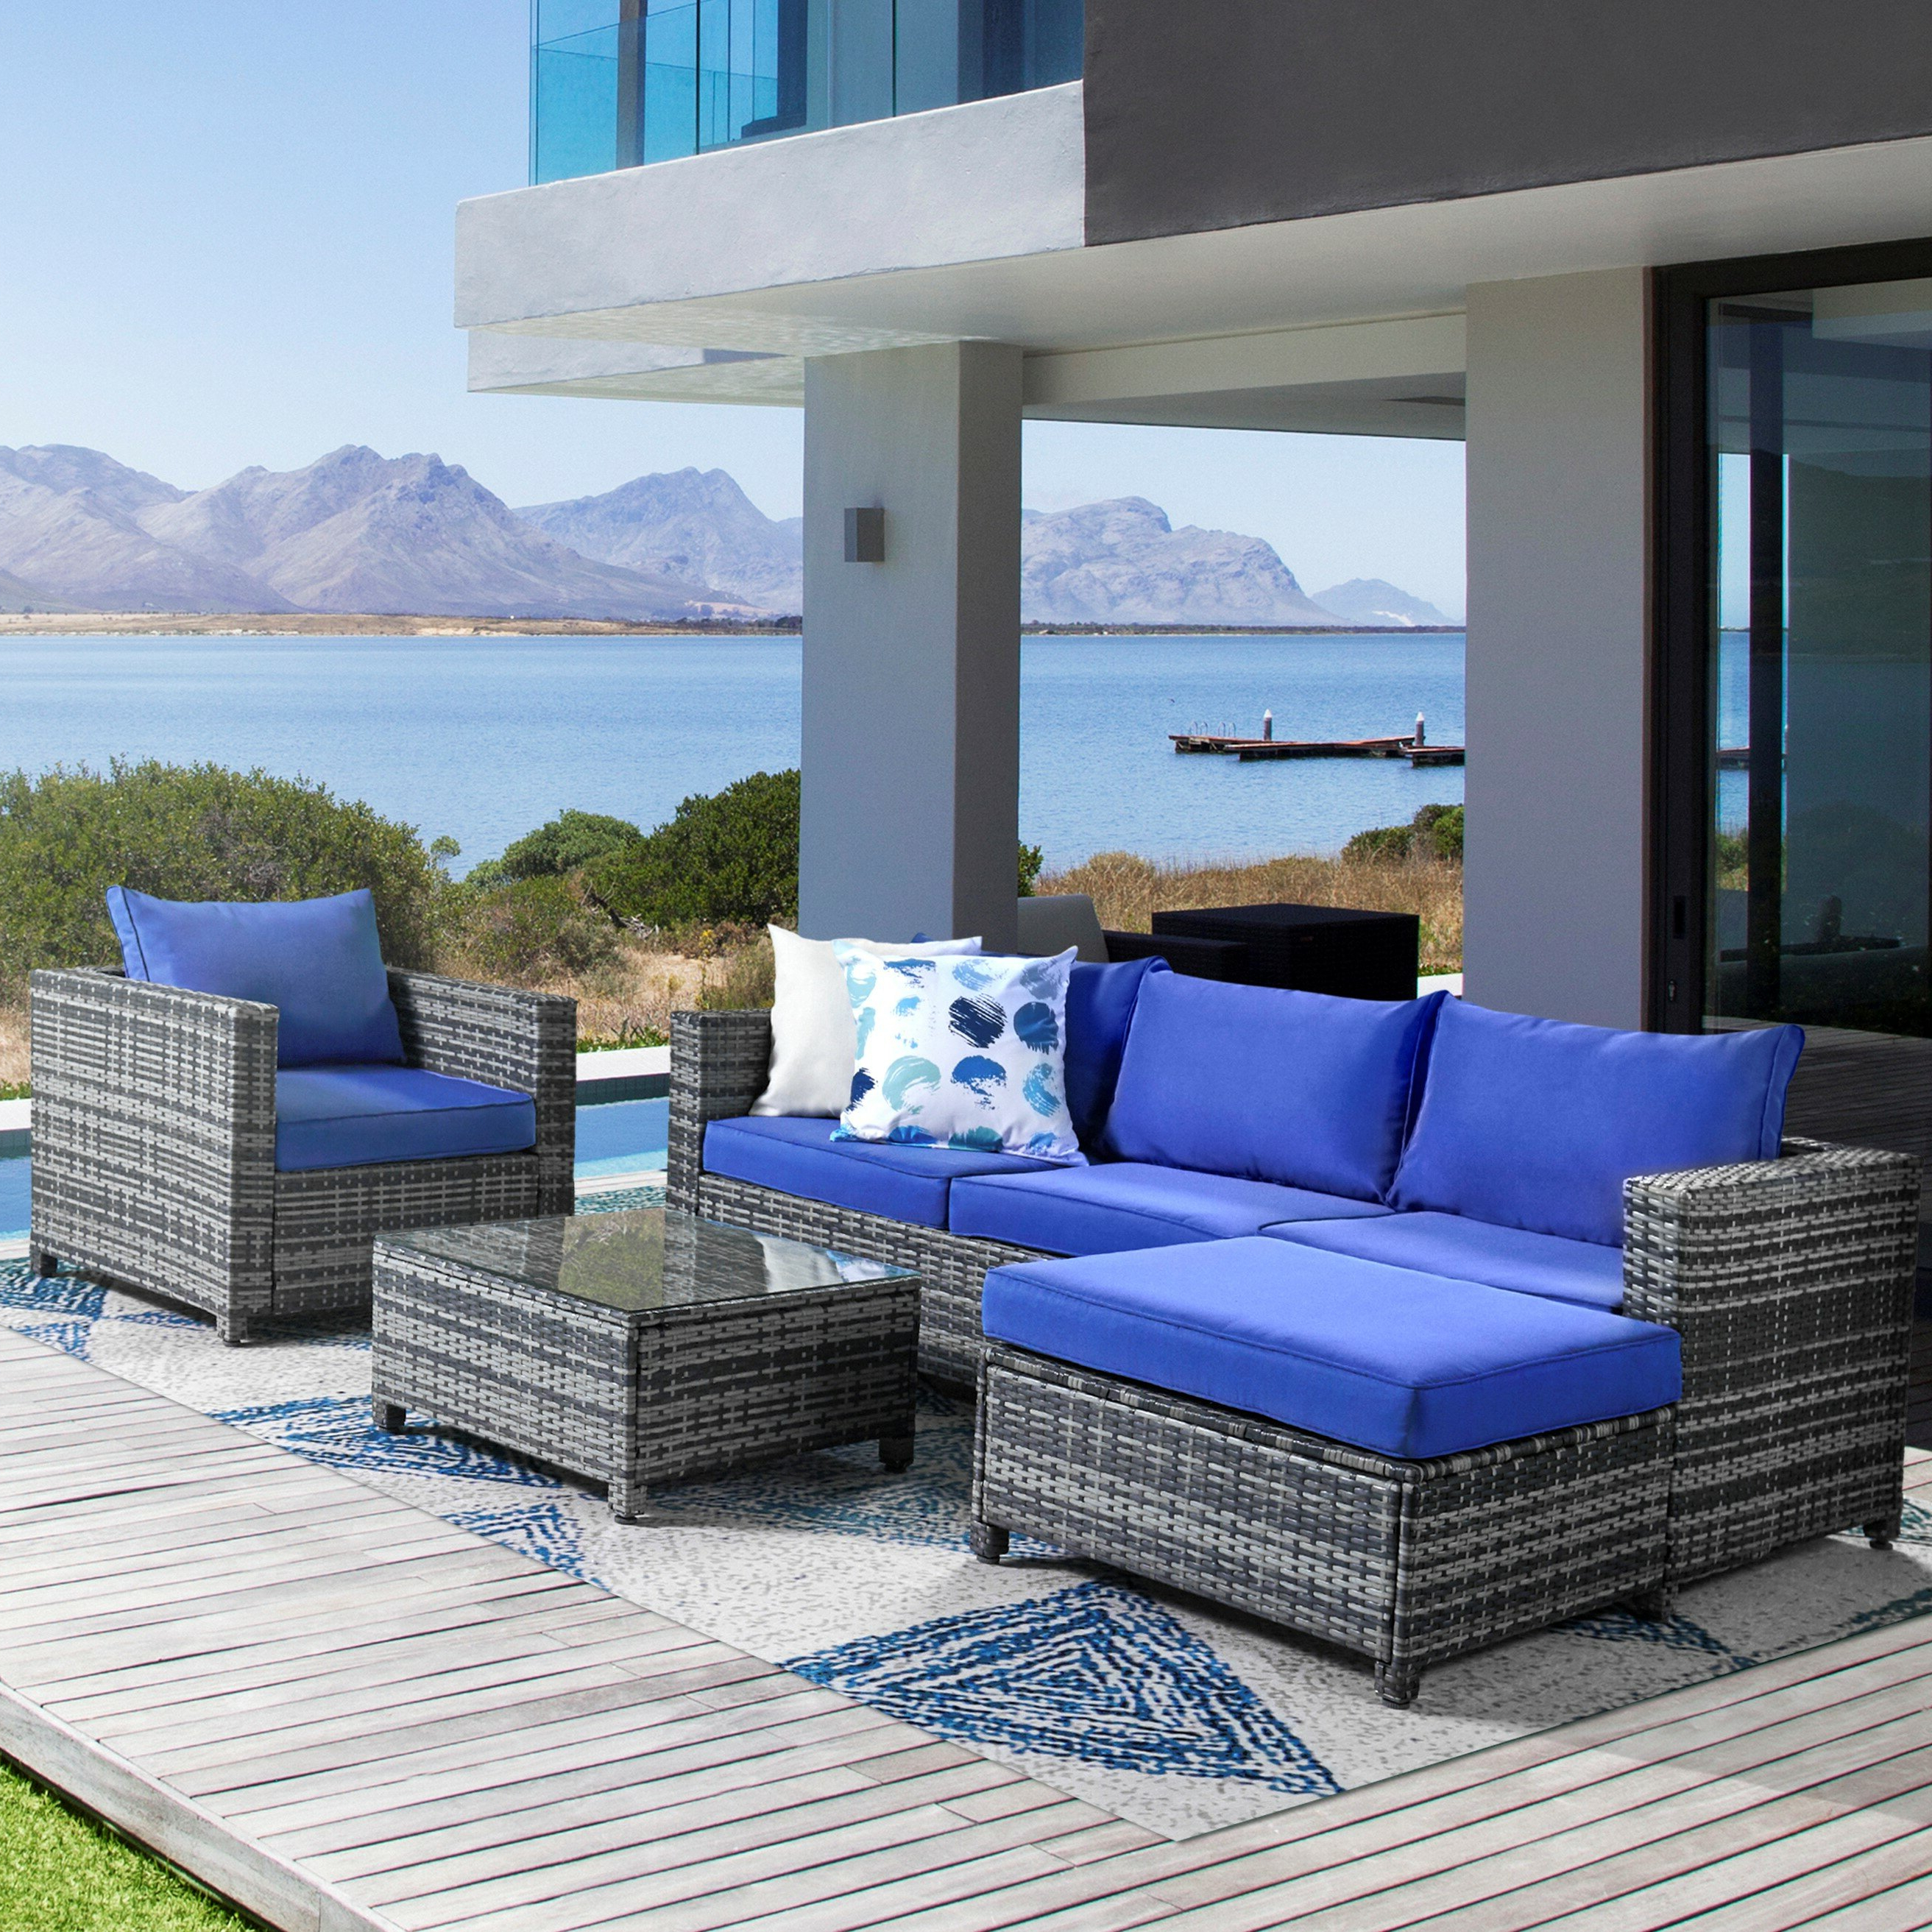 Widely Used Sascha Patio Sectional With Cushions For Rowley Patio Sofas Set With Cushions (View 8 of 20)